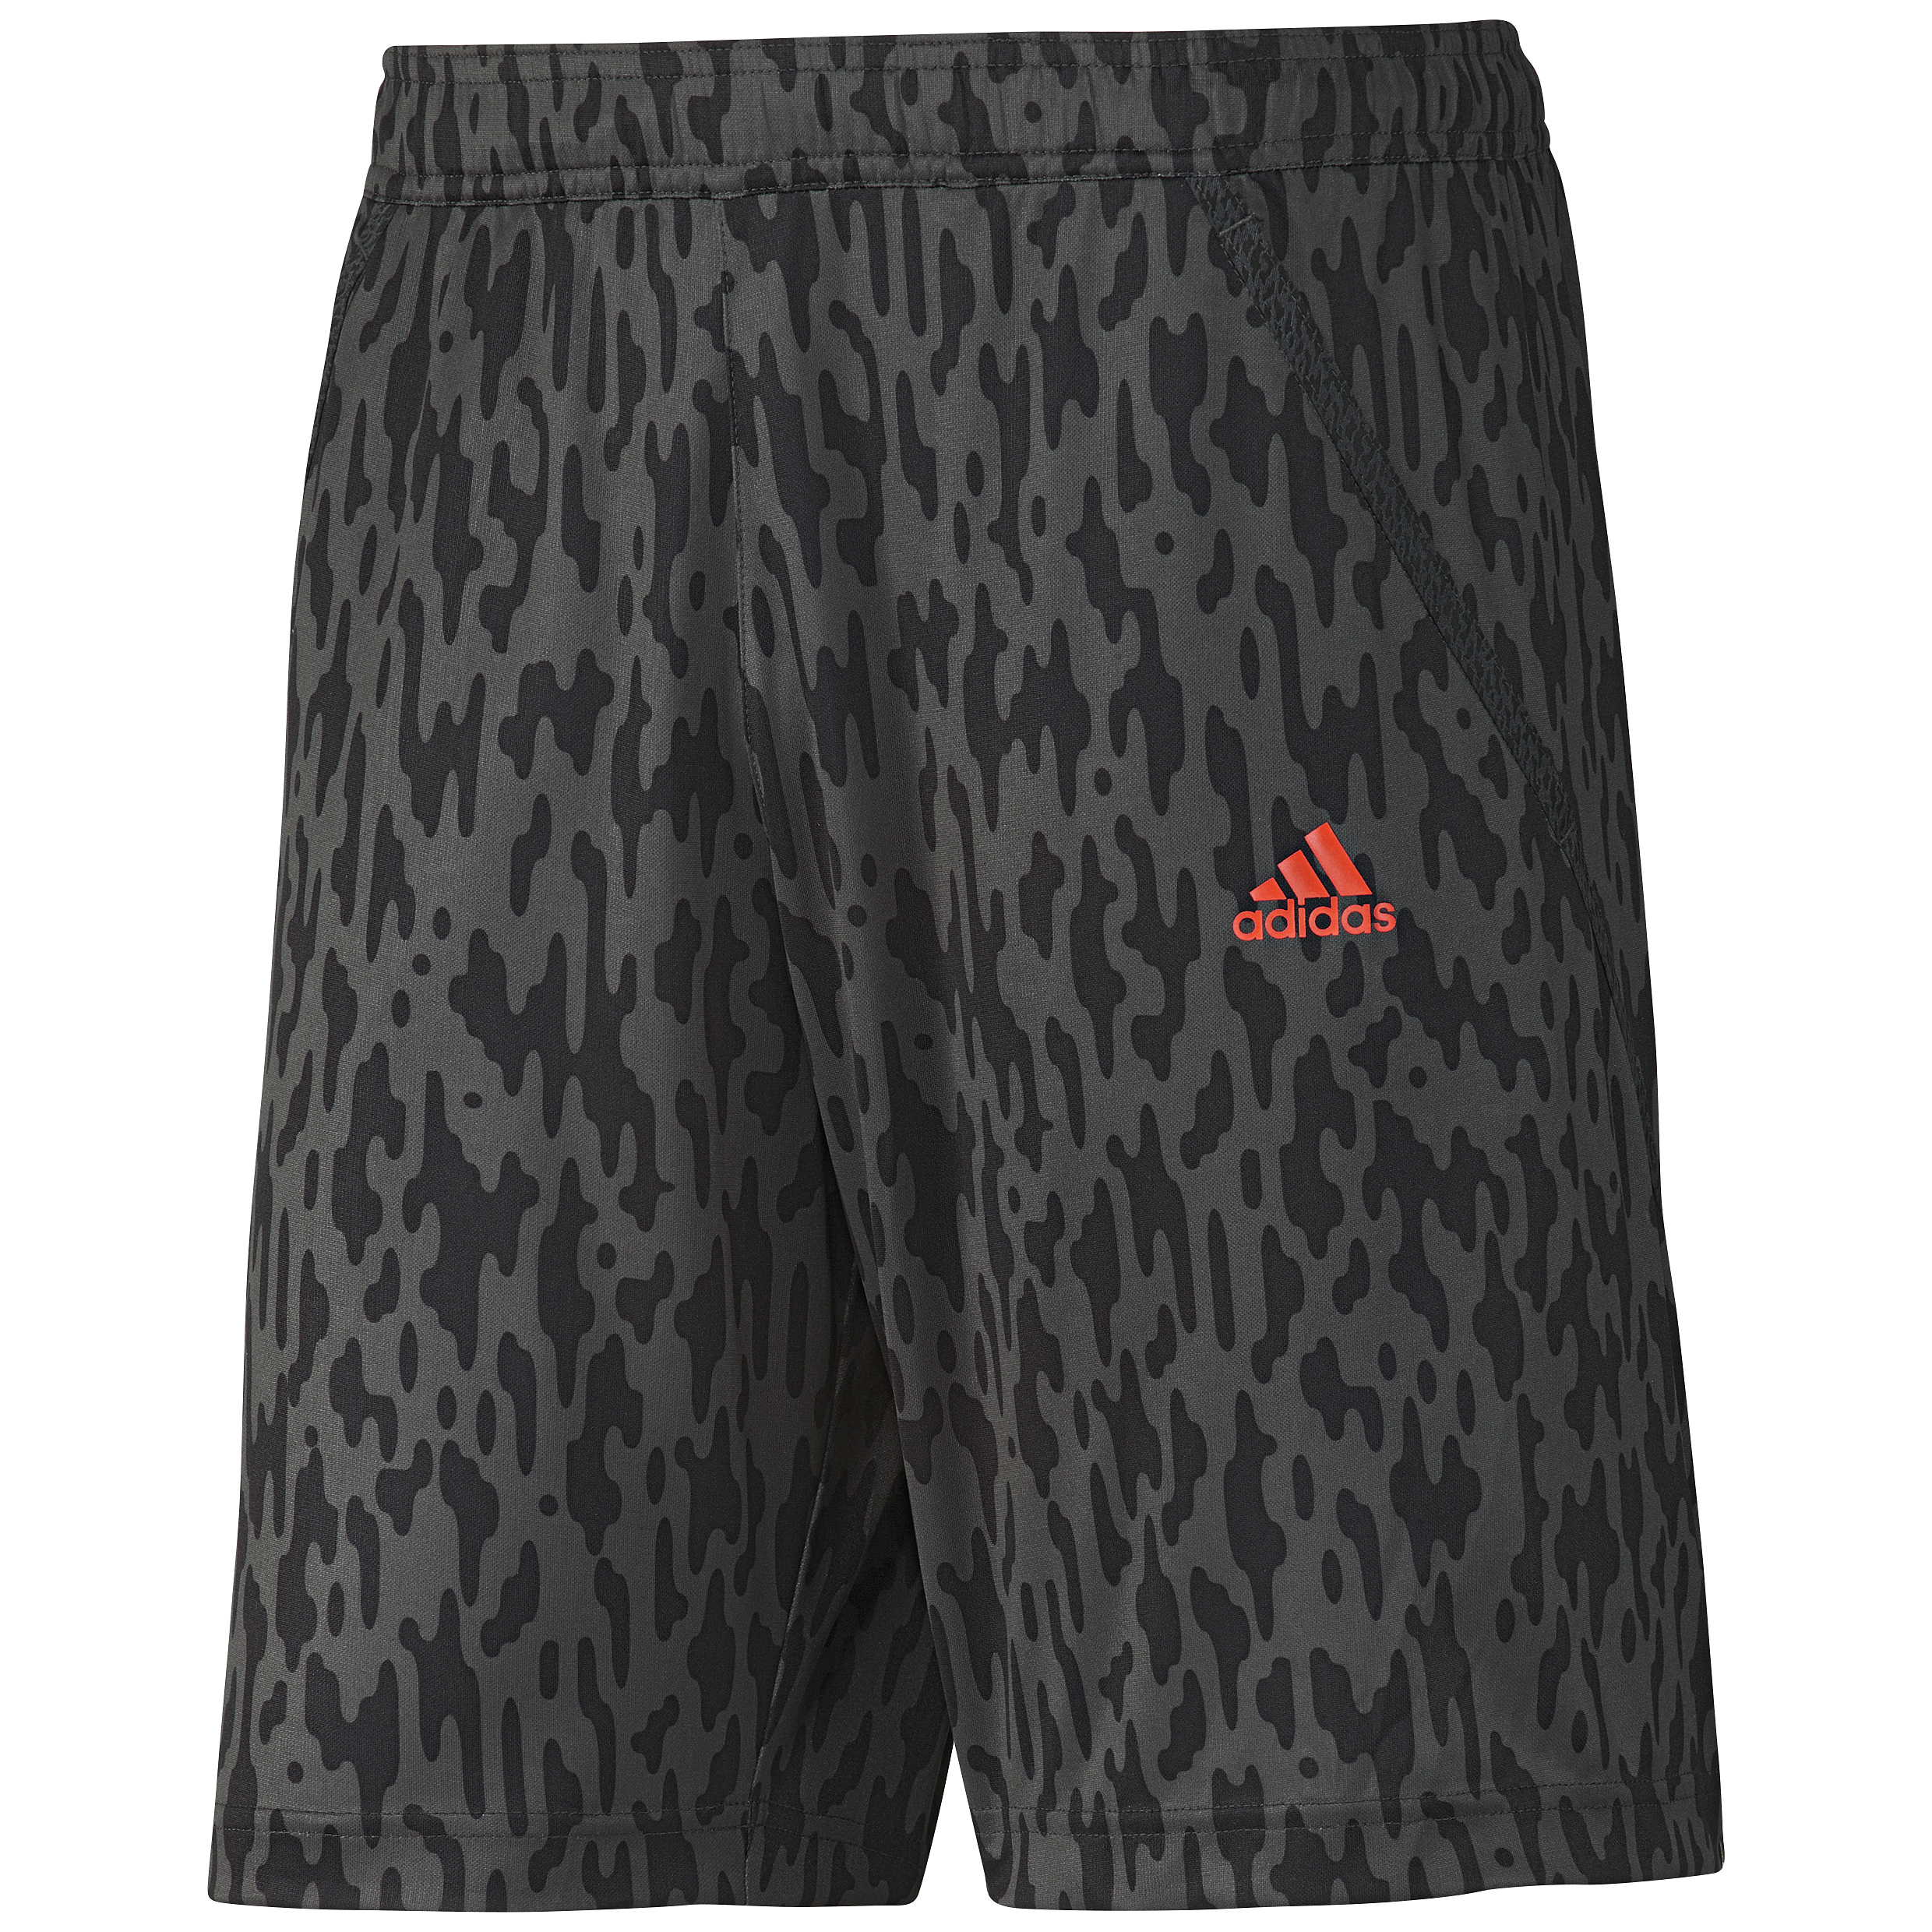 Adidas World Cup Short - Kids Dk Grey